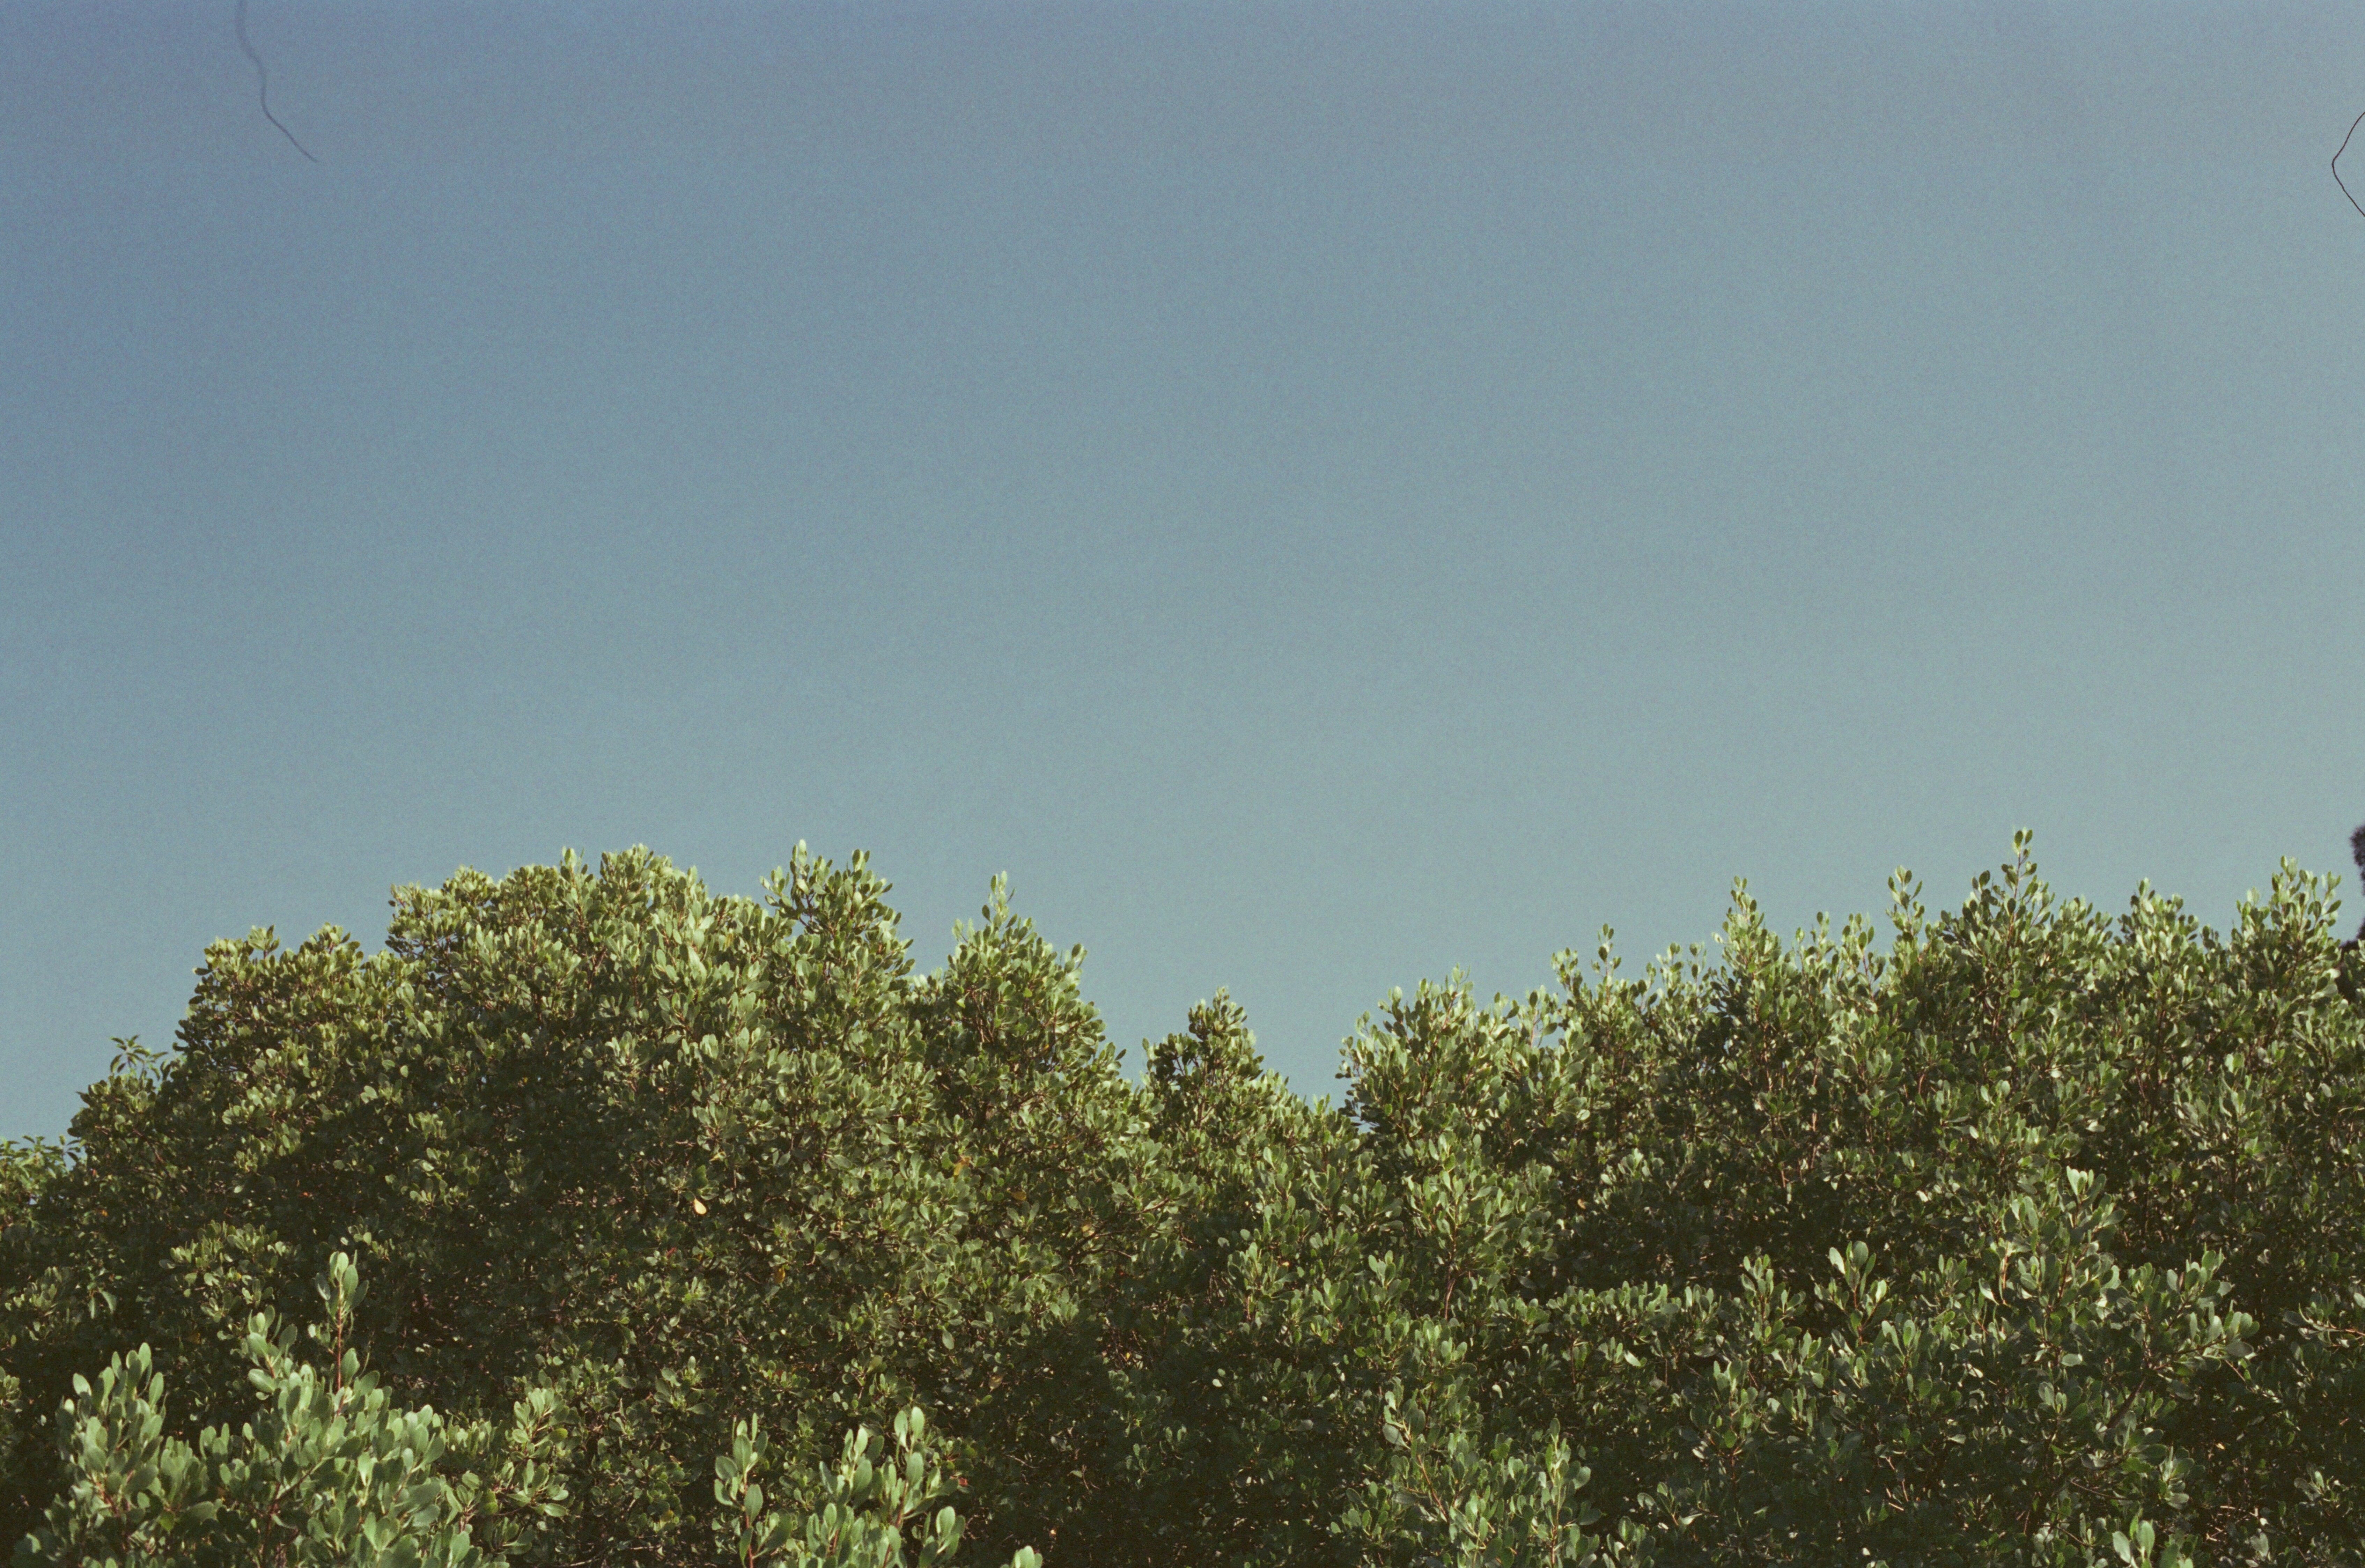 A fuzzy shot of the tops of bushy trees against a clear sky